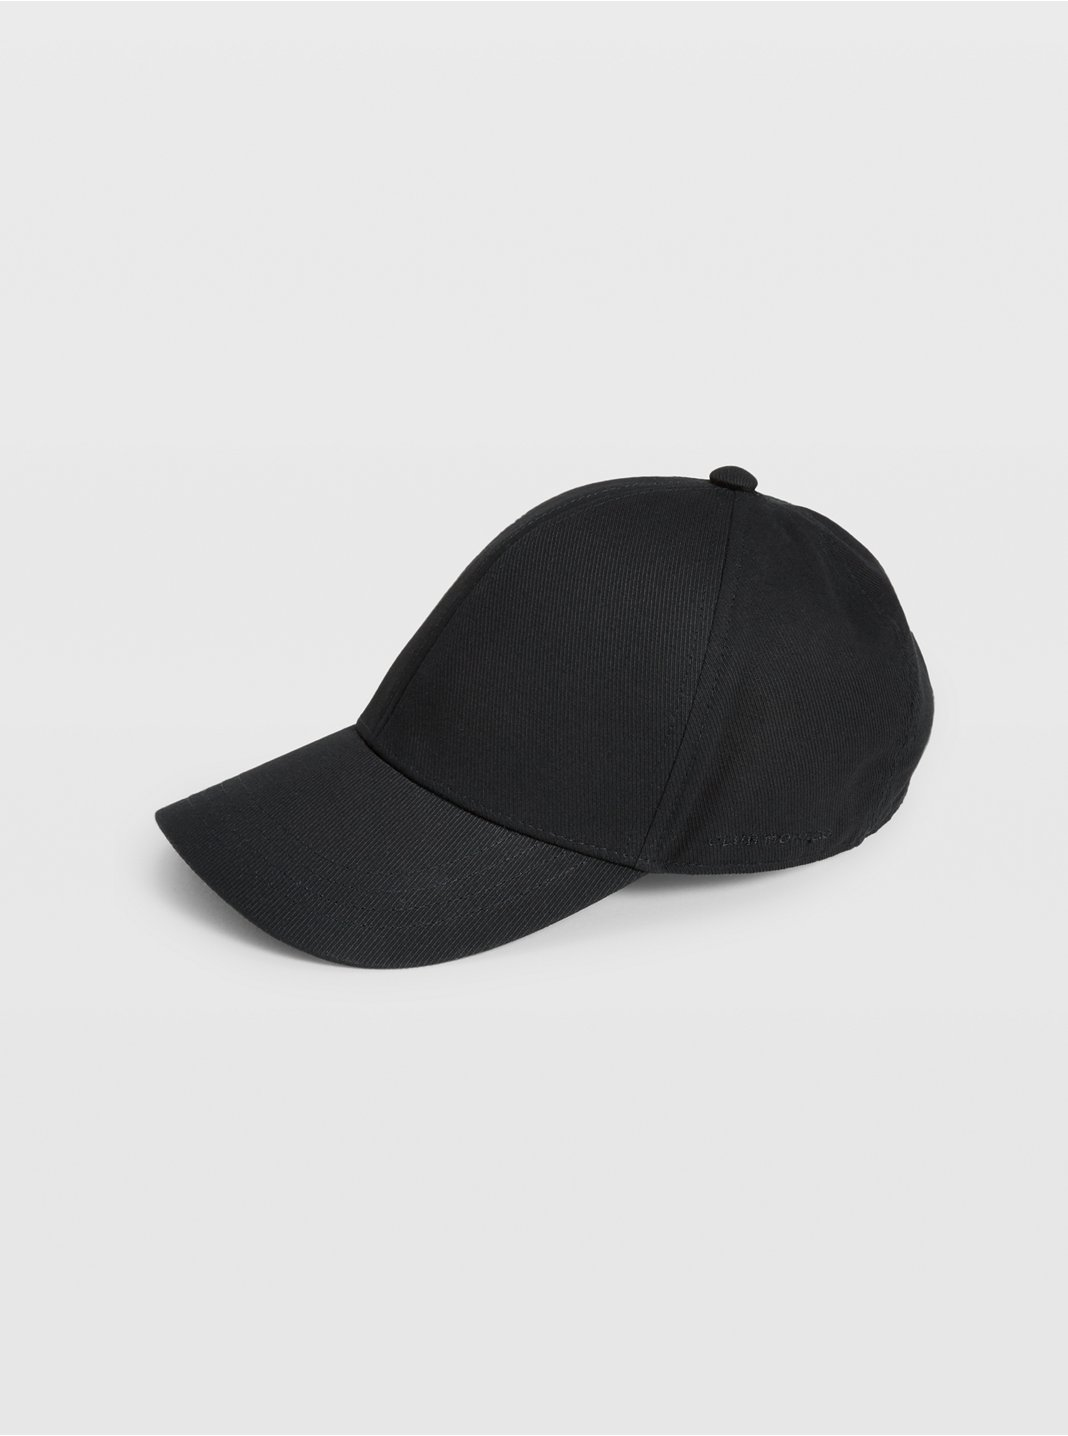 클럽 모나코 볼캡 모자 Club Monaco Cotton Twill Baseball Cap,Black